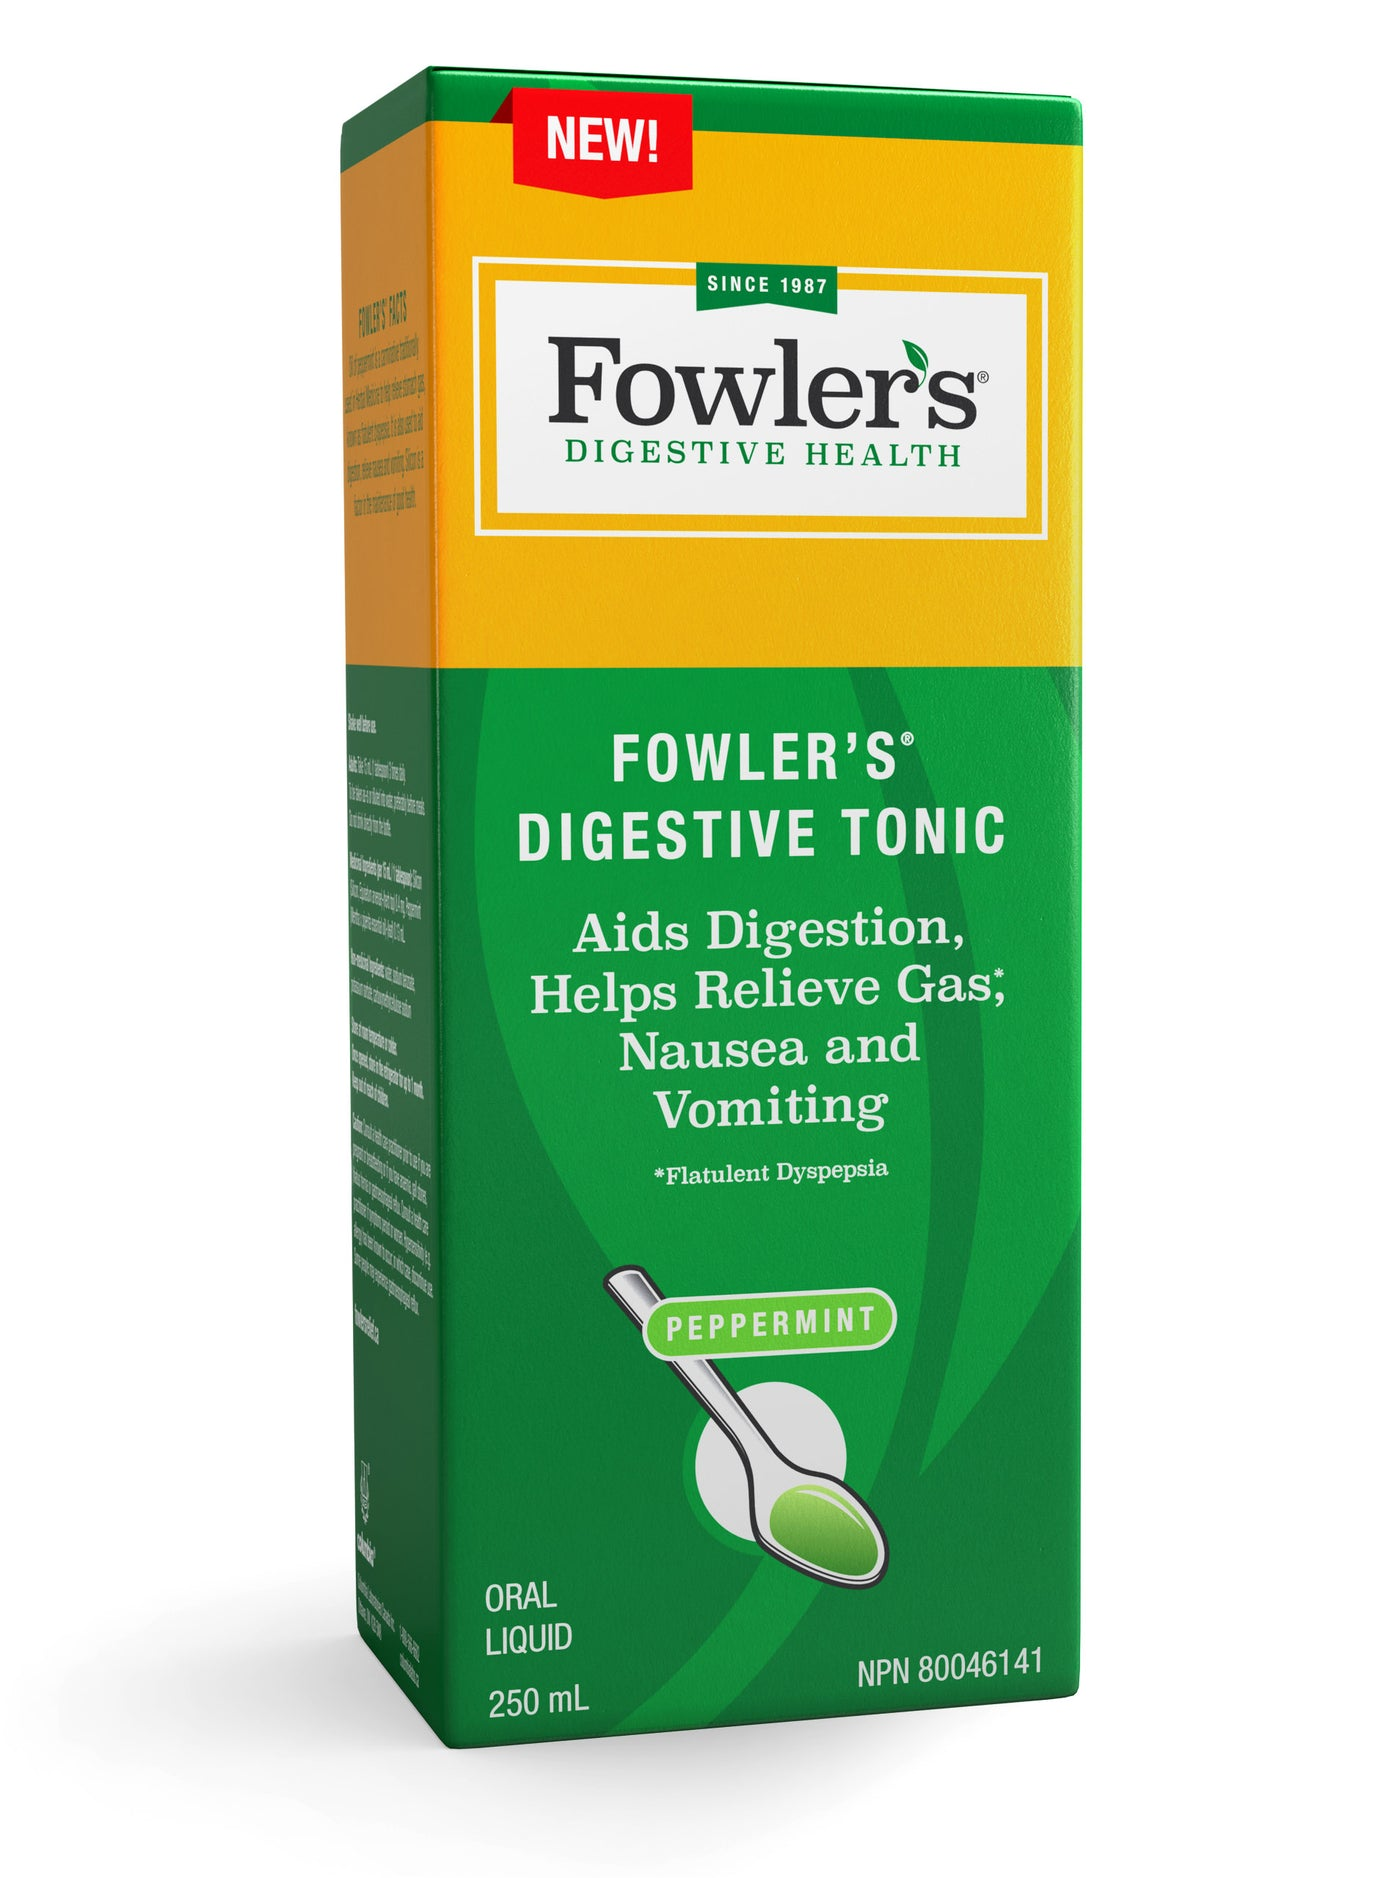 Fowler's Digestive Tonic – Aids Digestion, Helps Relieve Gas, Nausea and Vomiting